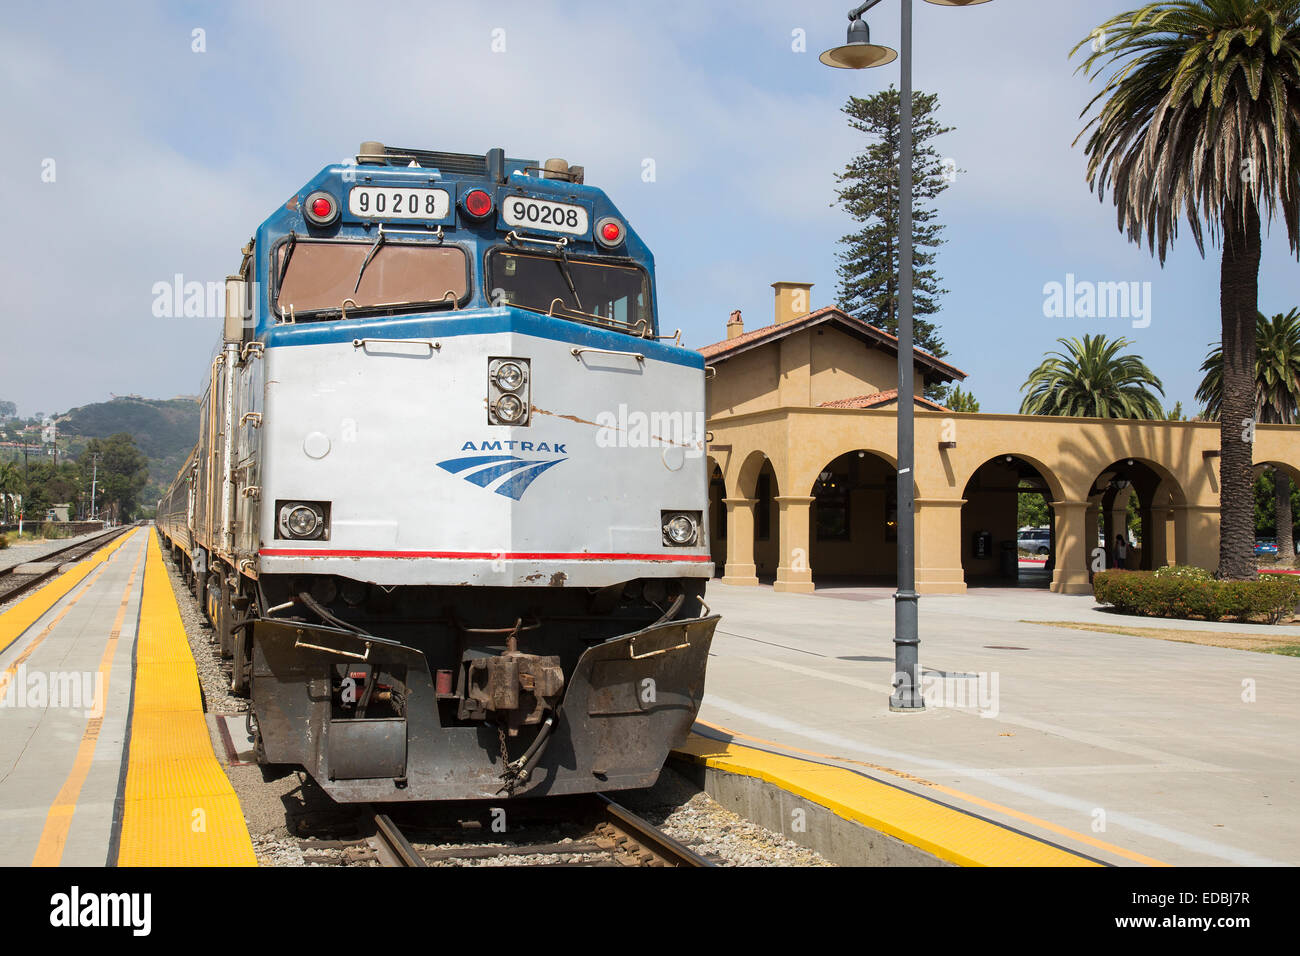 Santa Barbara Railway Station in California, United States serving the Coast Starlight and the Pacific Surfliner - Stock Image